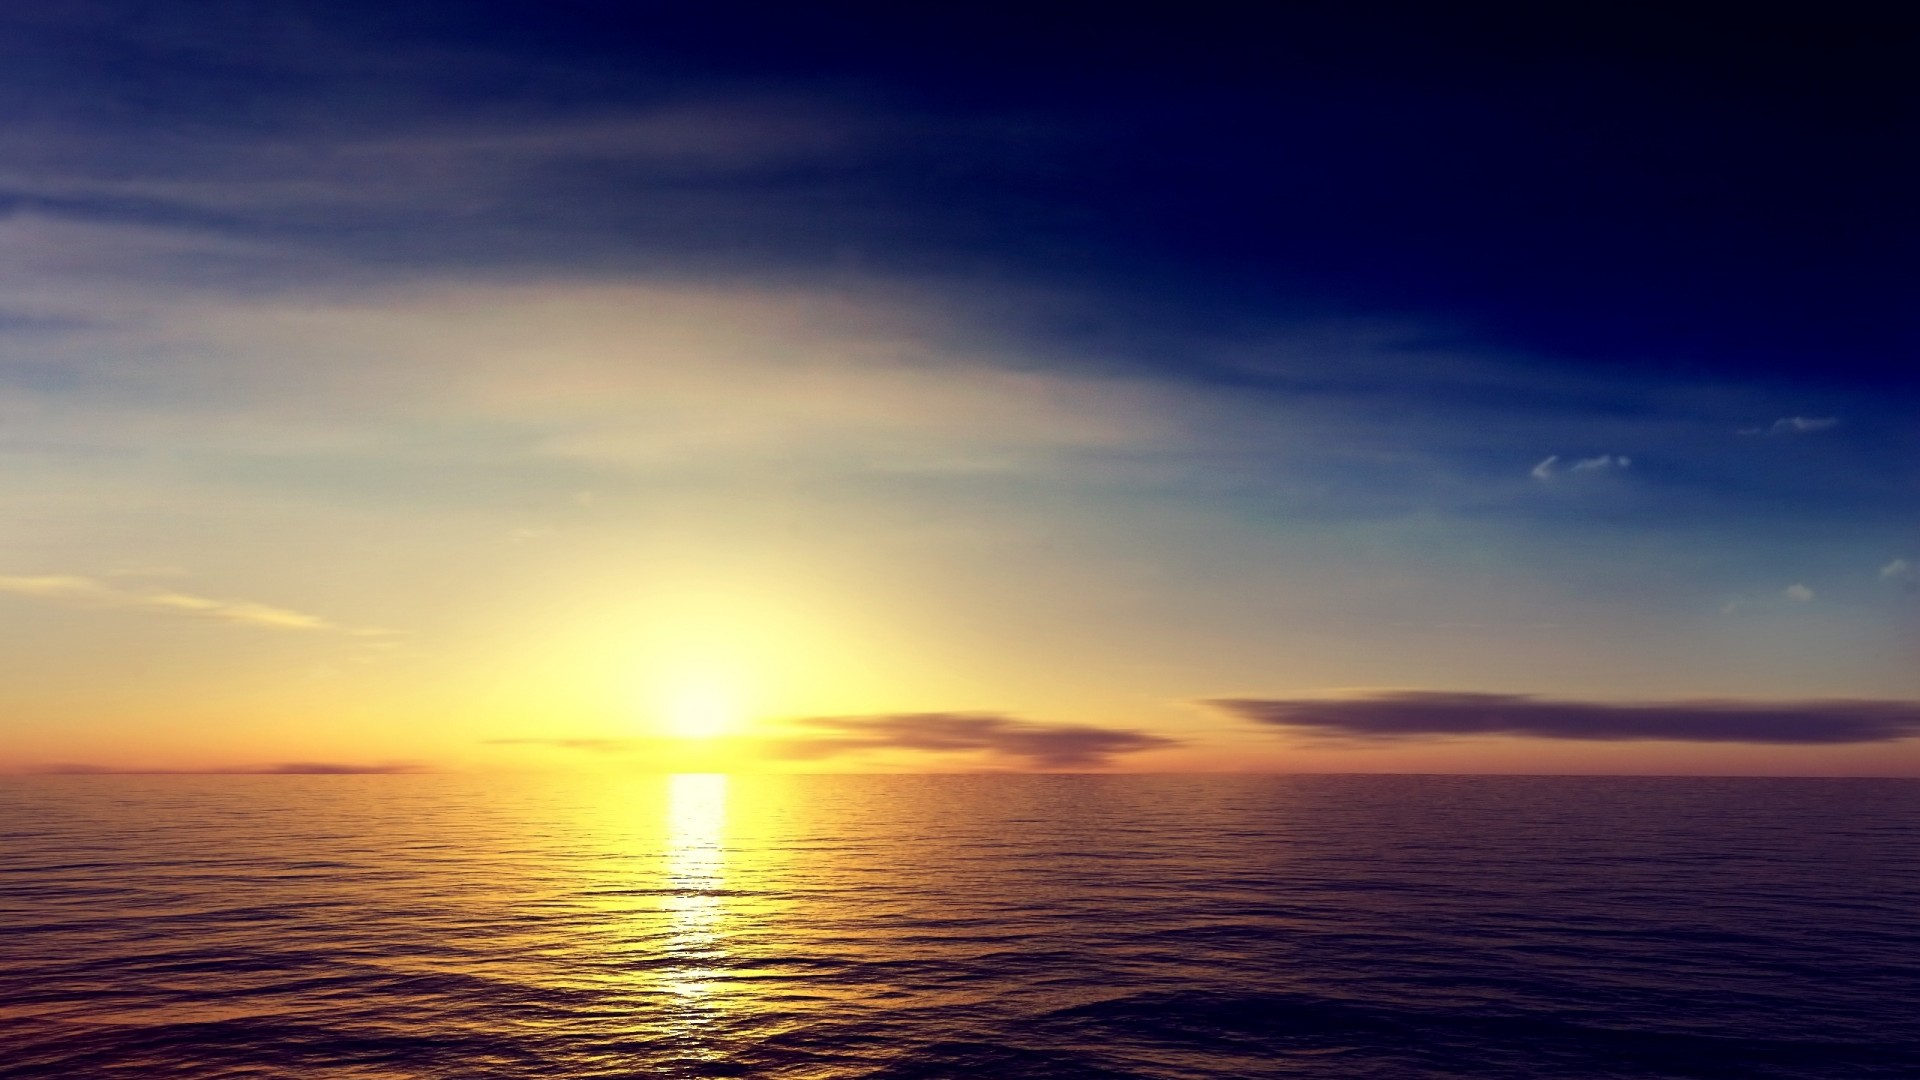 Sunrise Desktop Backgrounds  Wallpaper, High Definition, High Quality